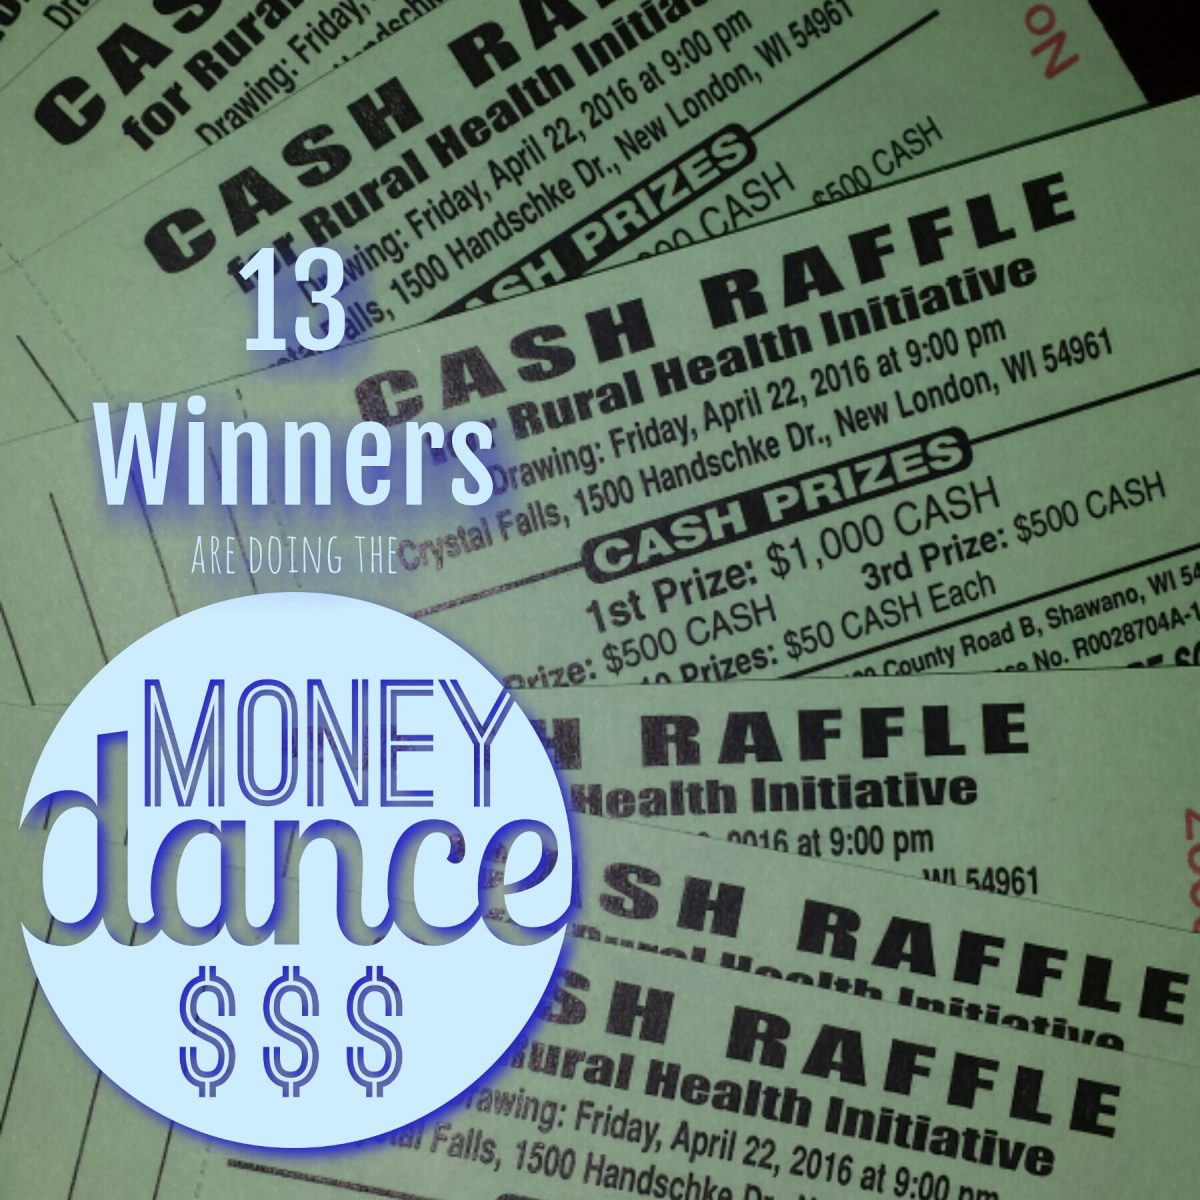 cash raffle winners announced rural health initiative the 13 winners were announced live at the annual event 4 winners present including the 1st place winner jess jesse collar of hortonville wi